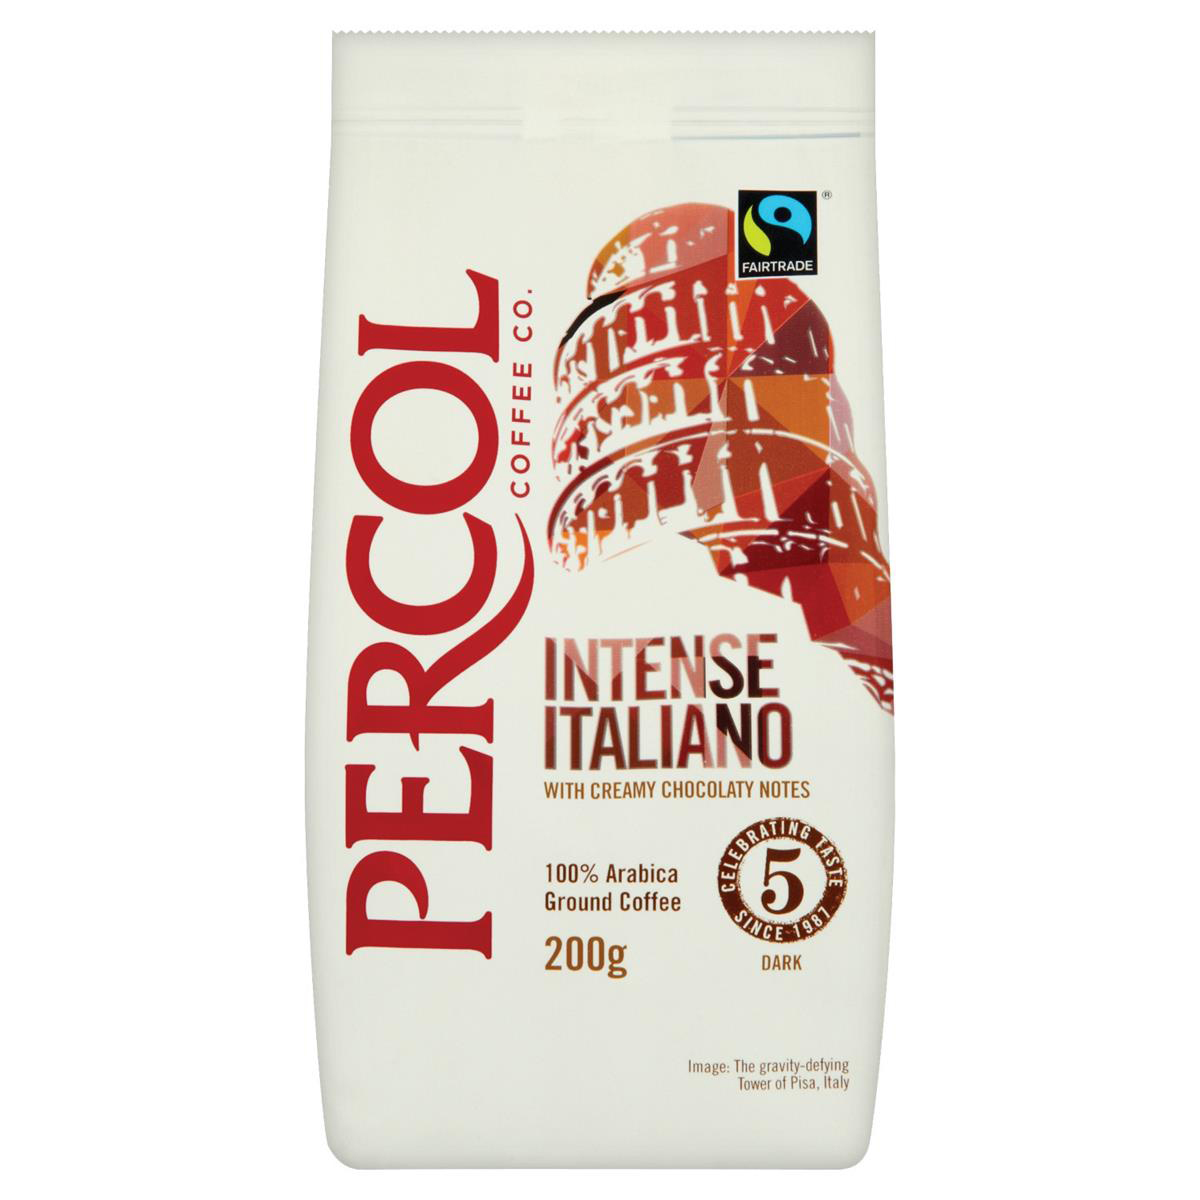 Coffee Percol Intense black and beyond Italiano Dark Ground Coffee 200g Ref 0403244